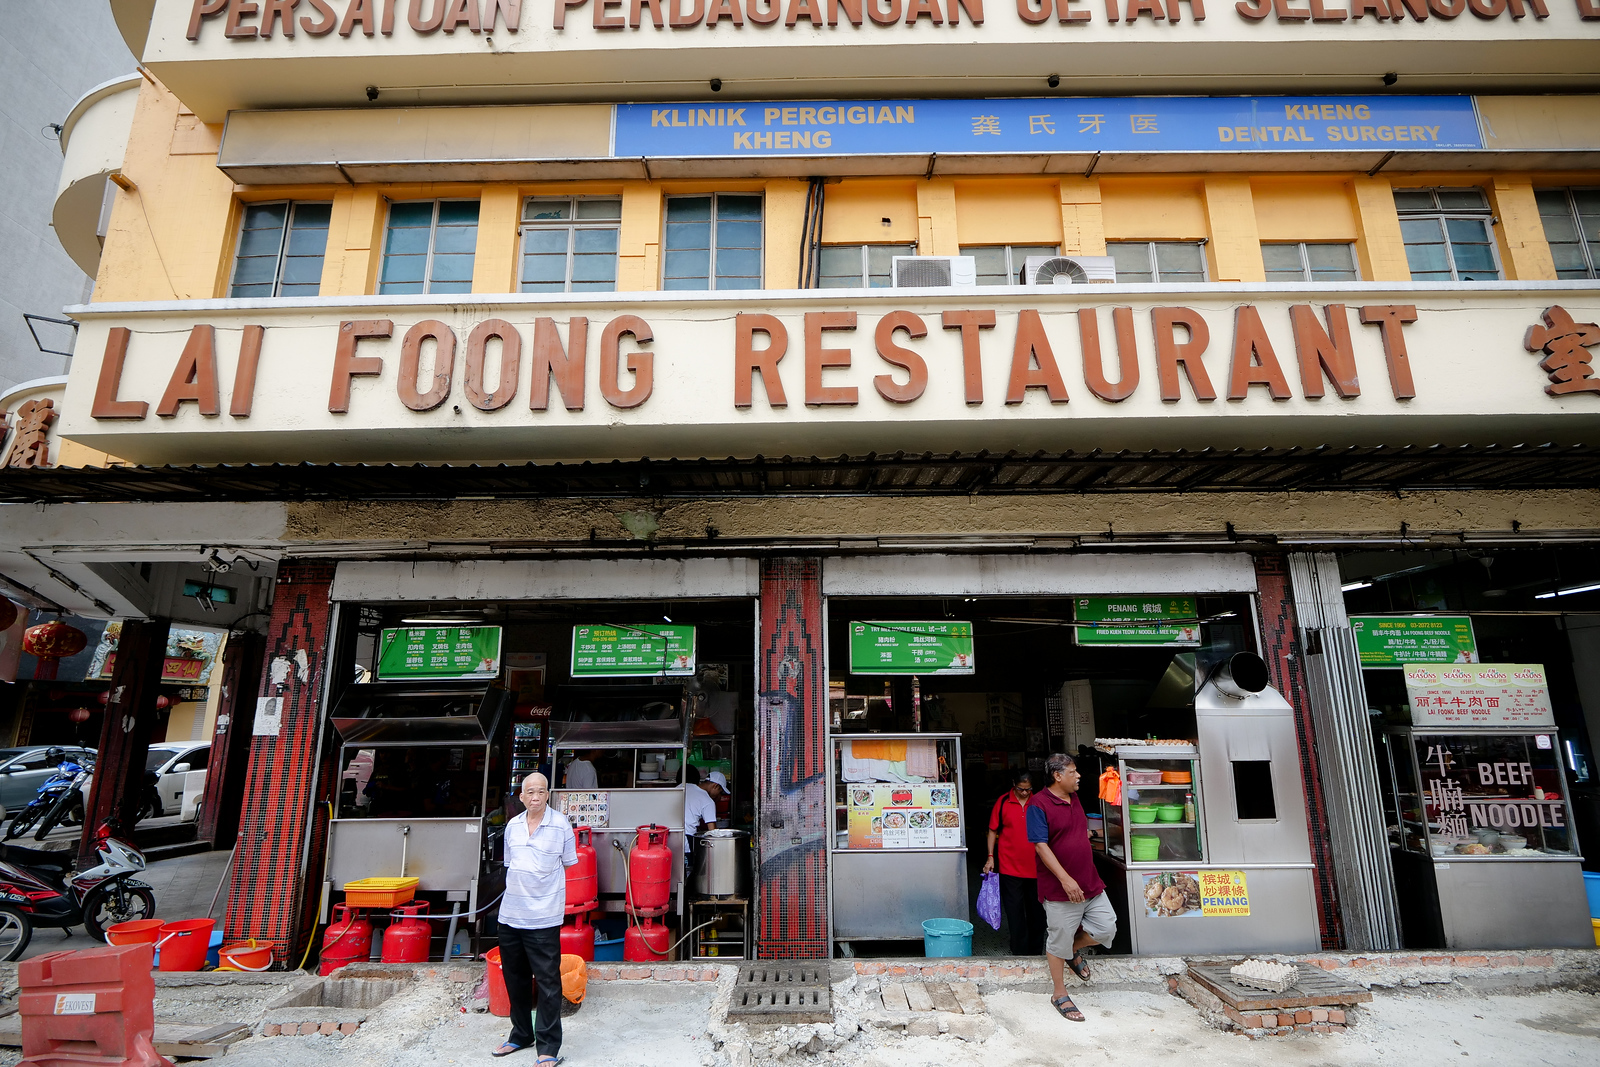 Visit Lai Foong Restaurant for a truly special bowl of clam noodles (huge bowls as well), for the price of just 10RM